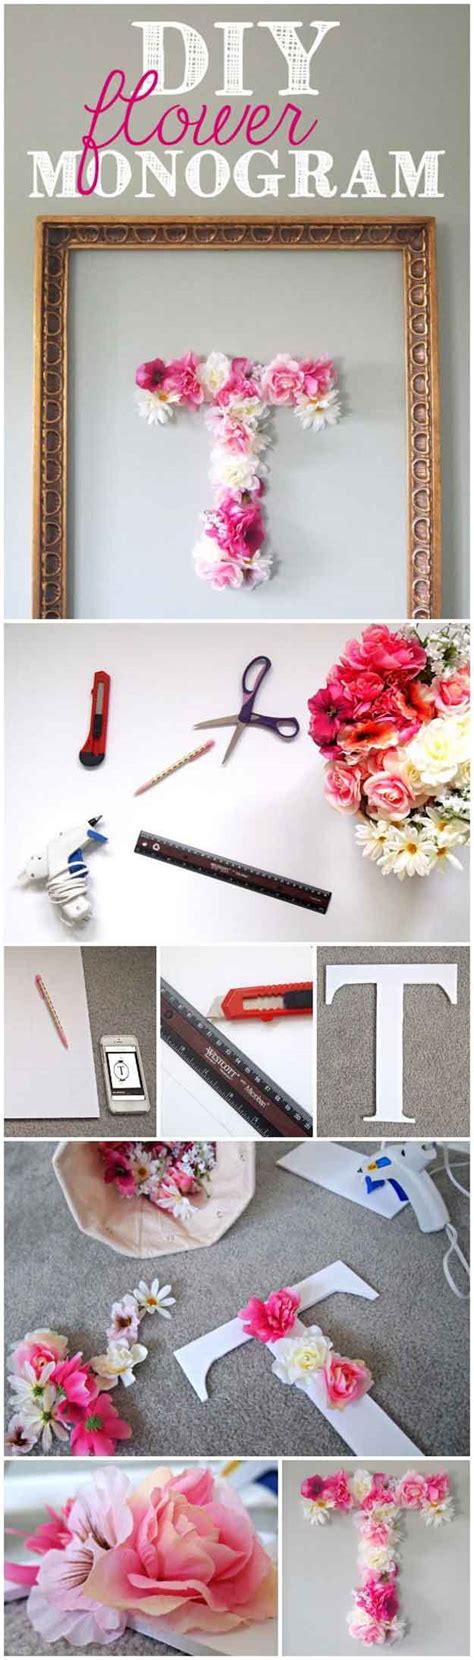 diy teen bedroom decor diy projects for teens bedroom diy ready